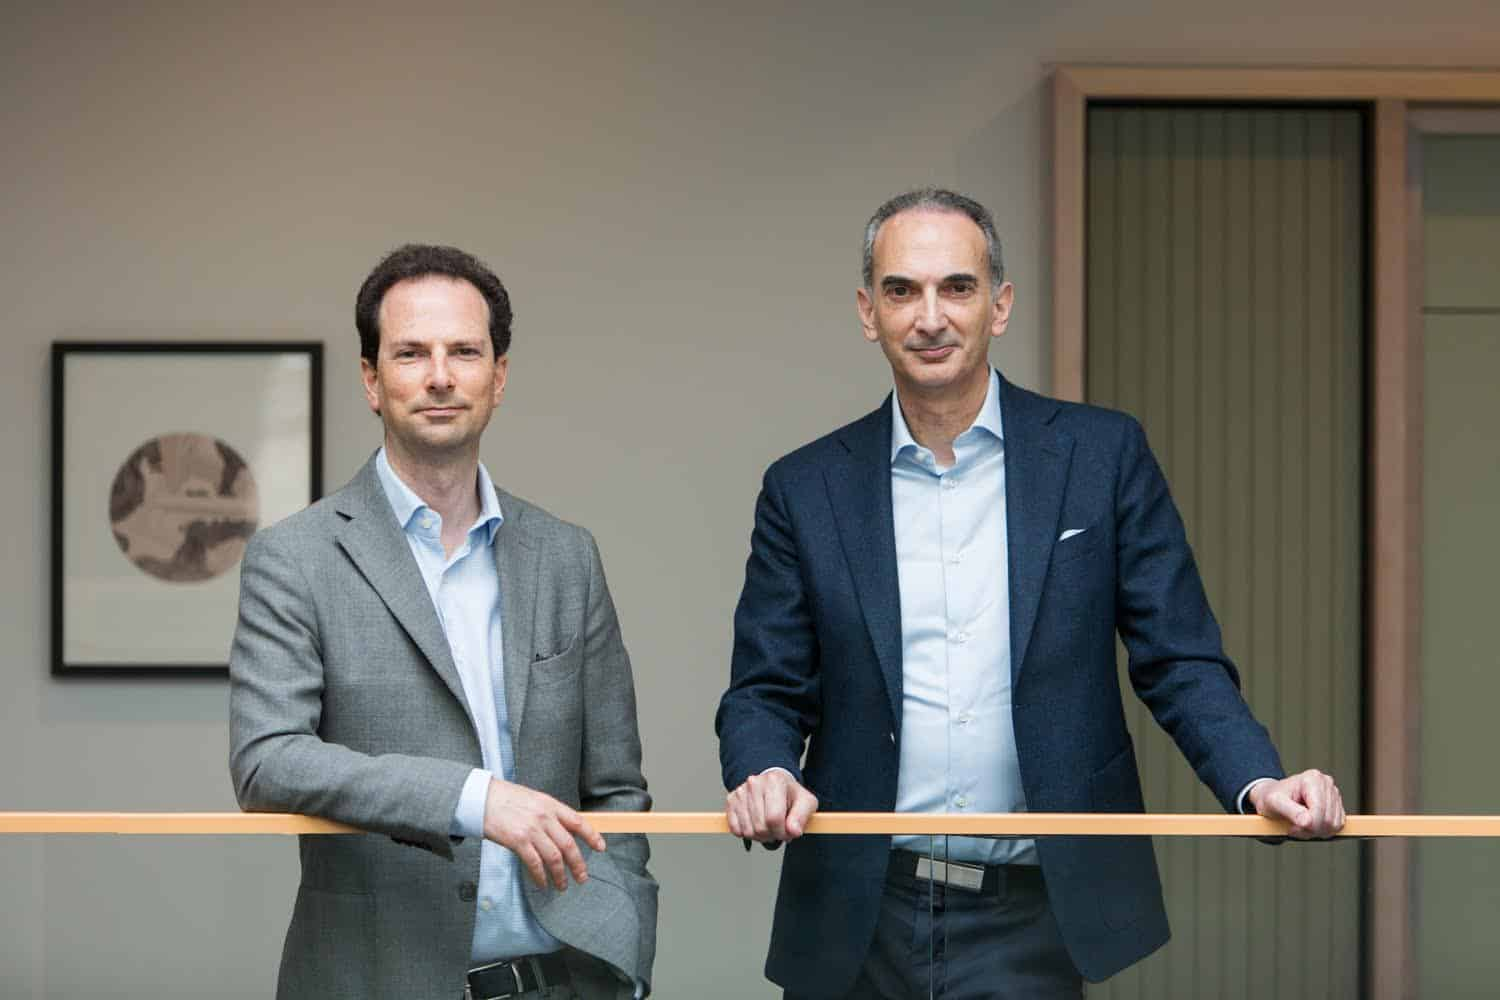 Pharmacierge secures £1.25 million Seed investment led by Alex Chesterman OBE and Simon Franks